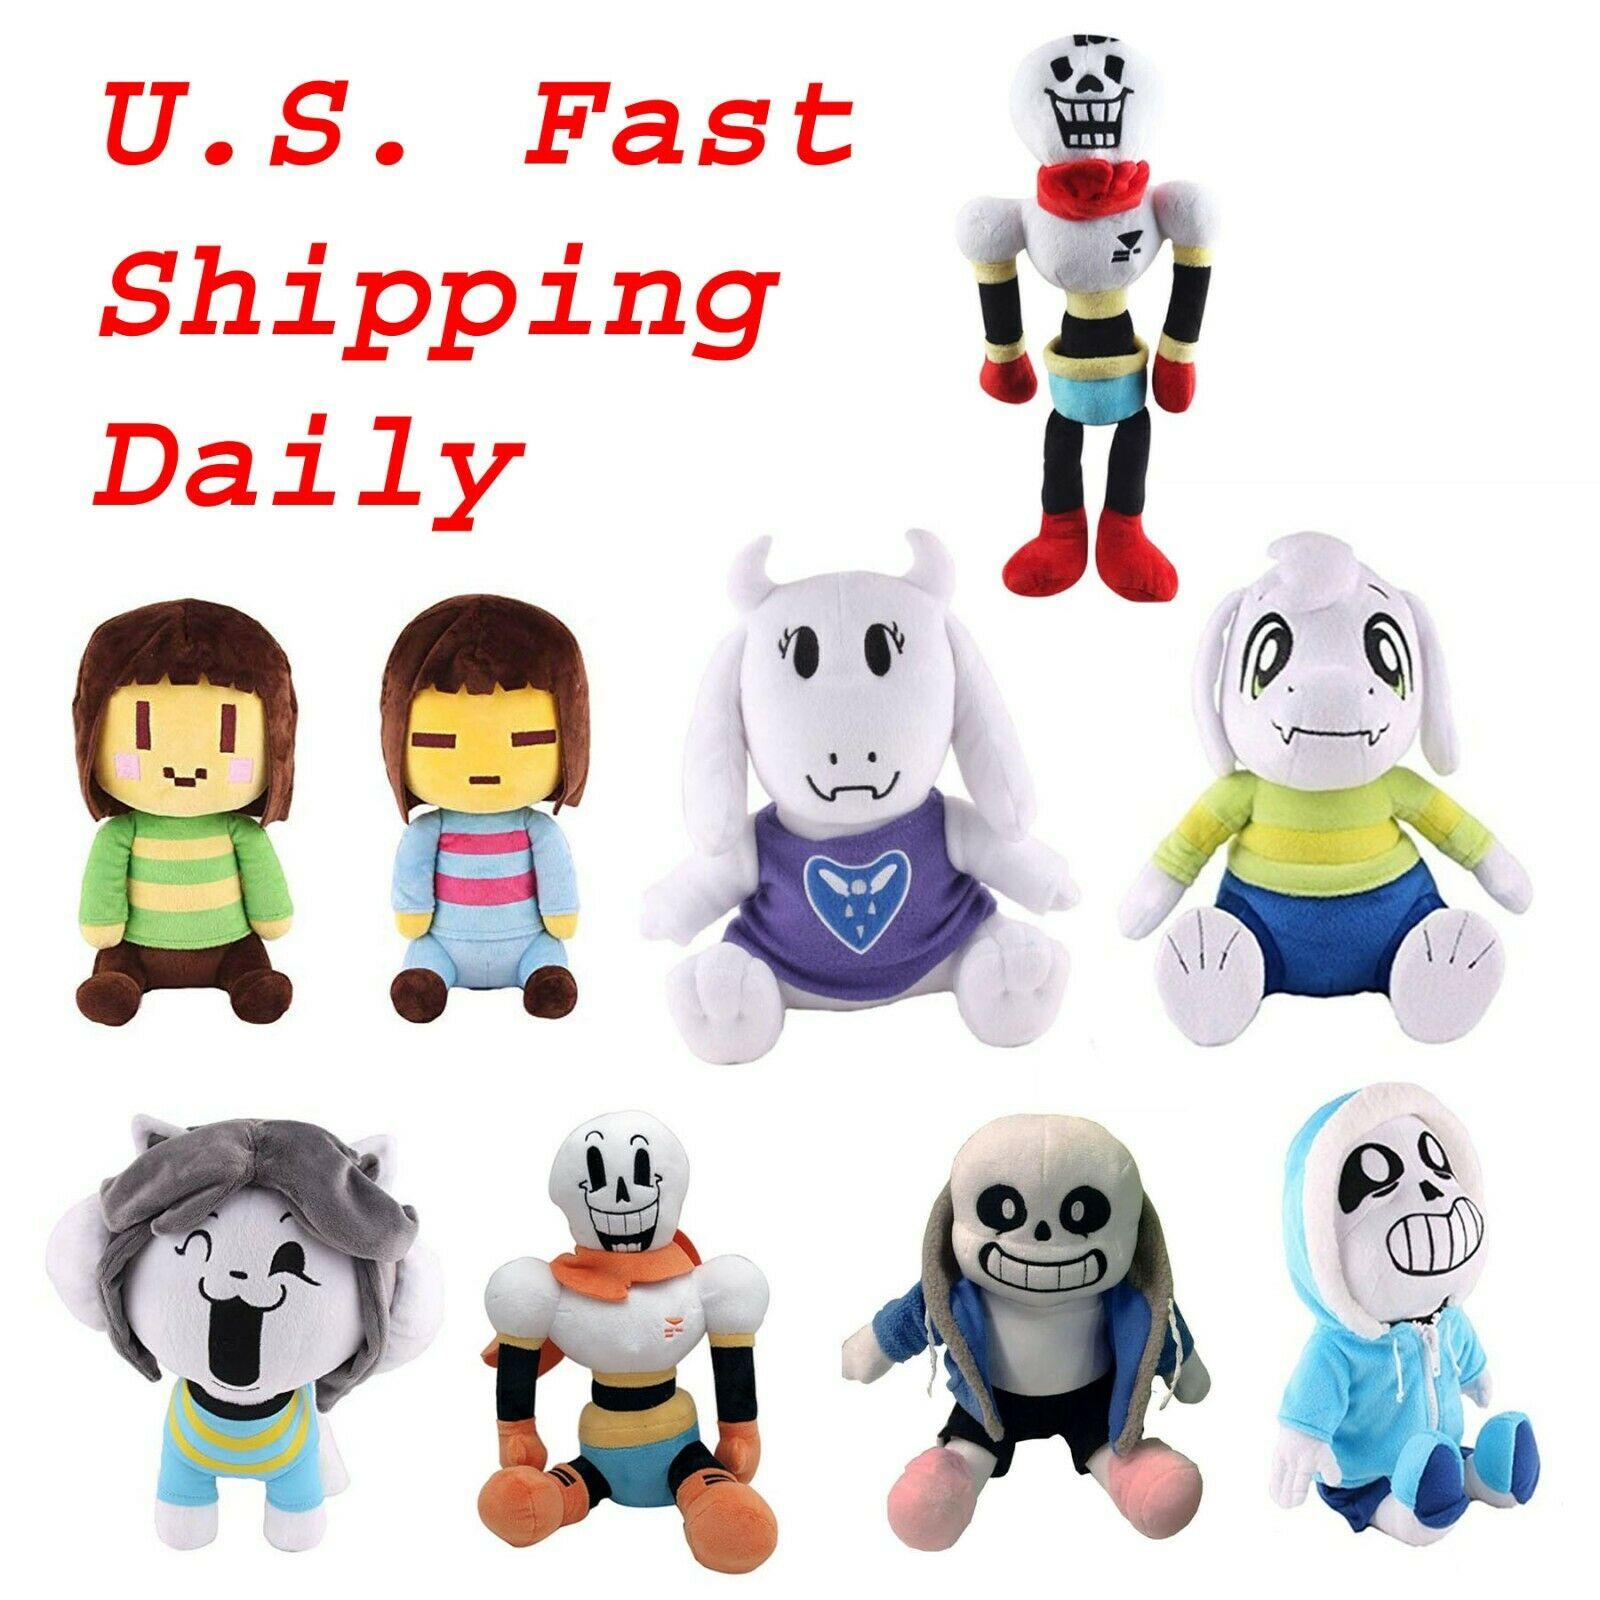 Undertale Plush Papyrus Toy Xmas Gifts Us Ships For Sale Online Ebay